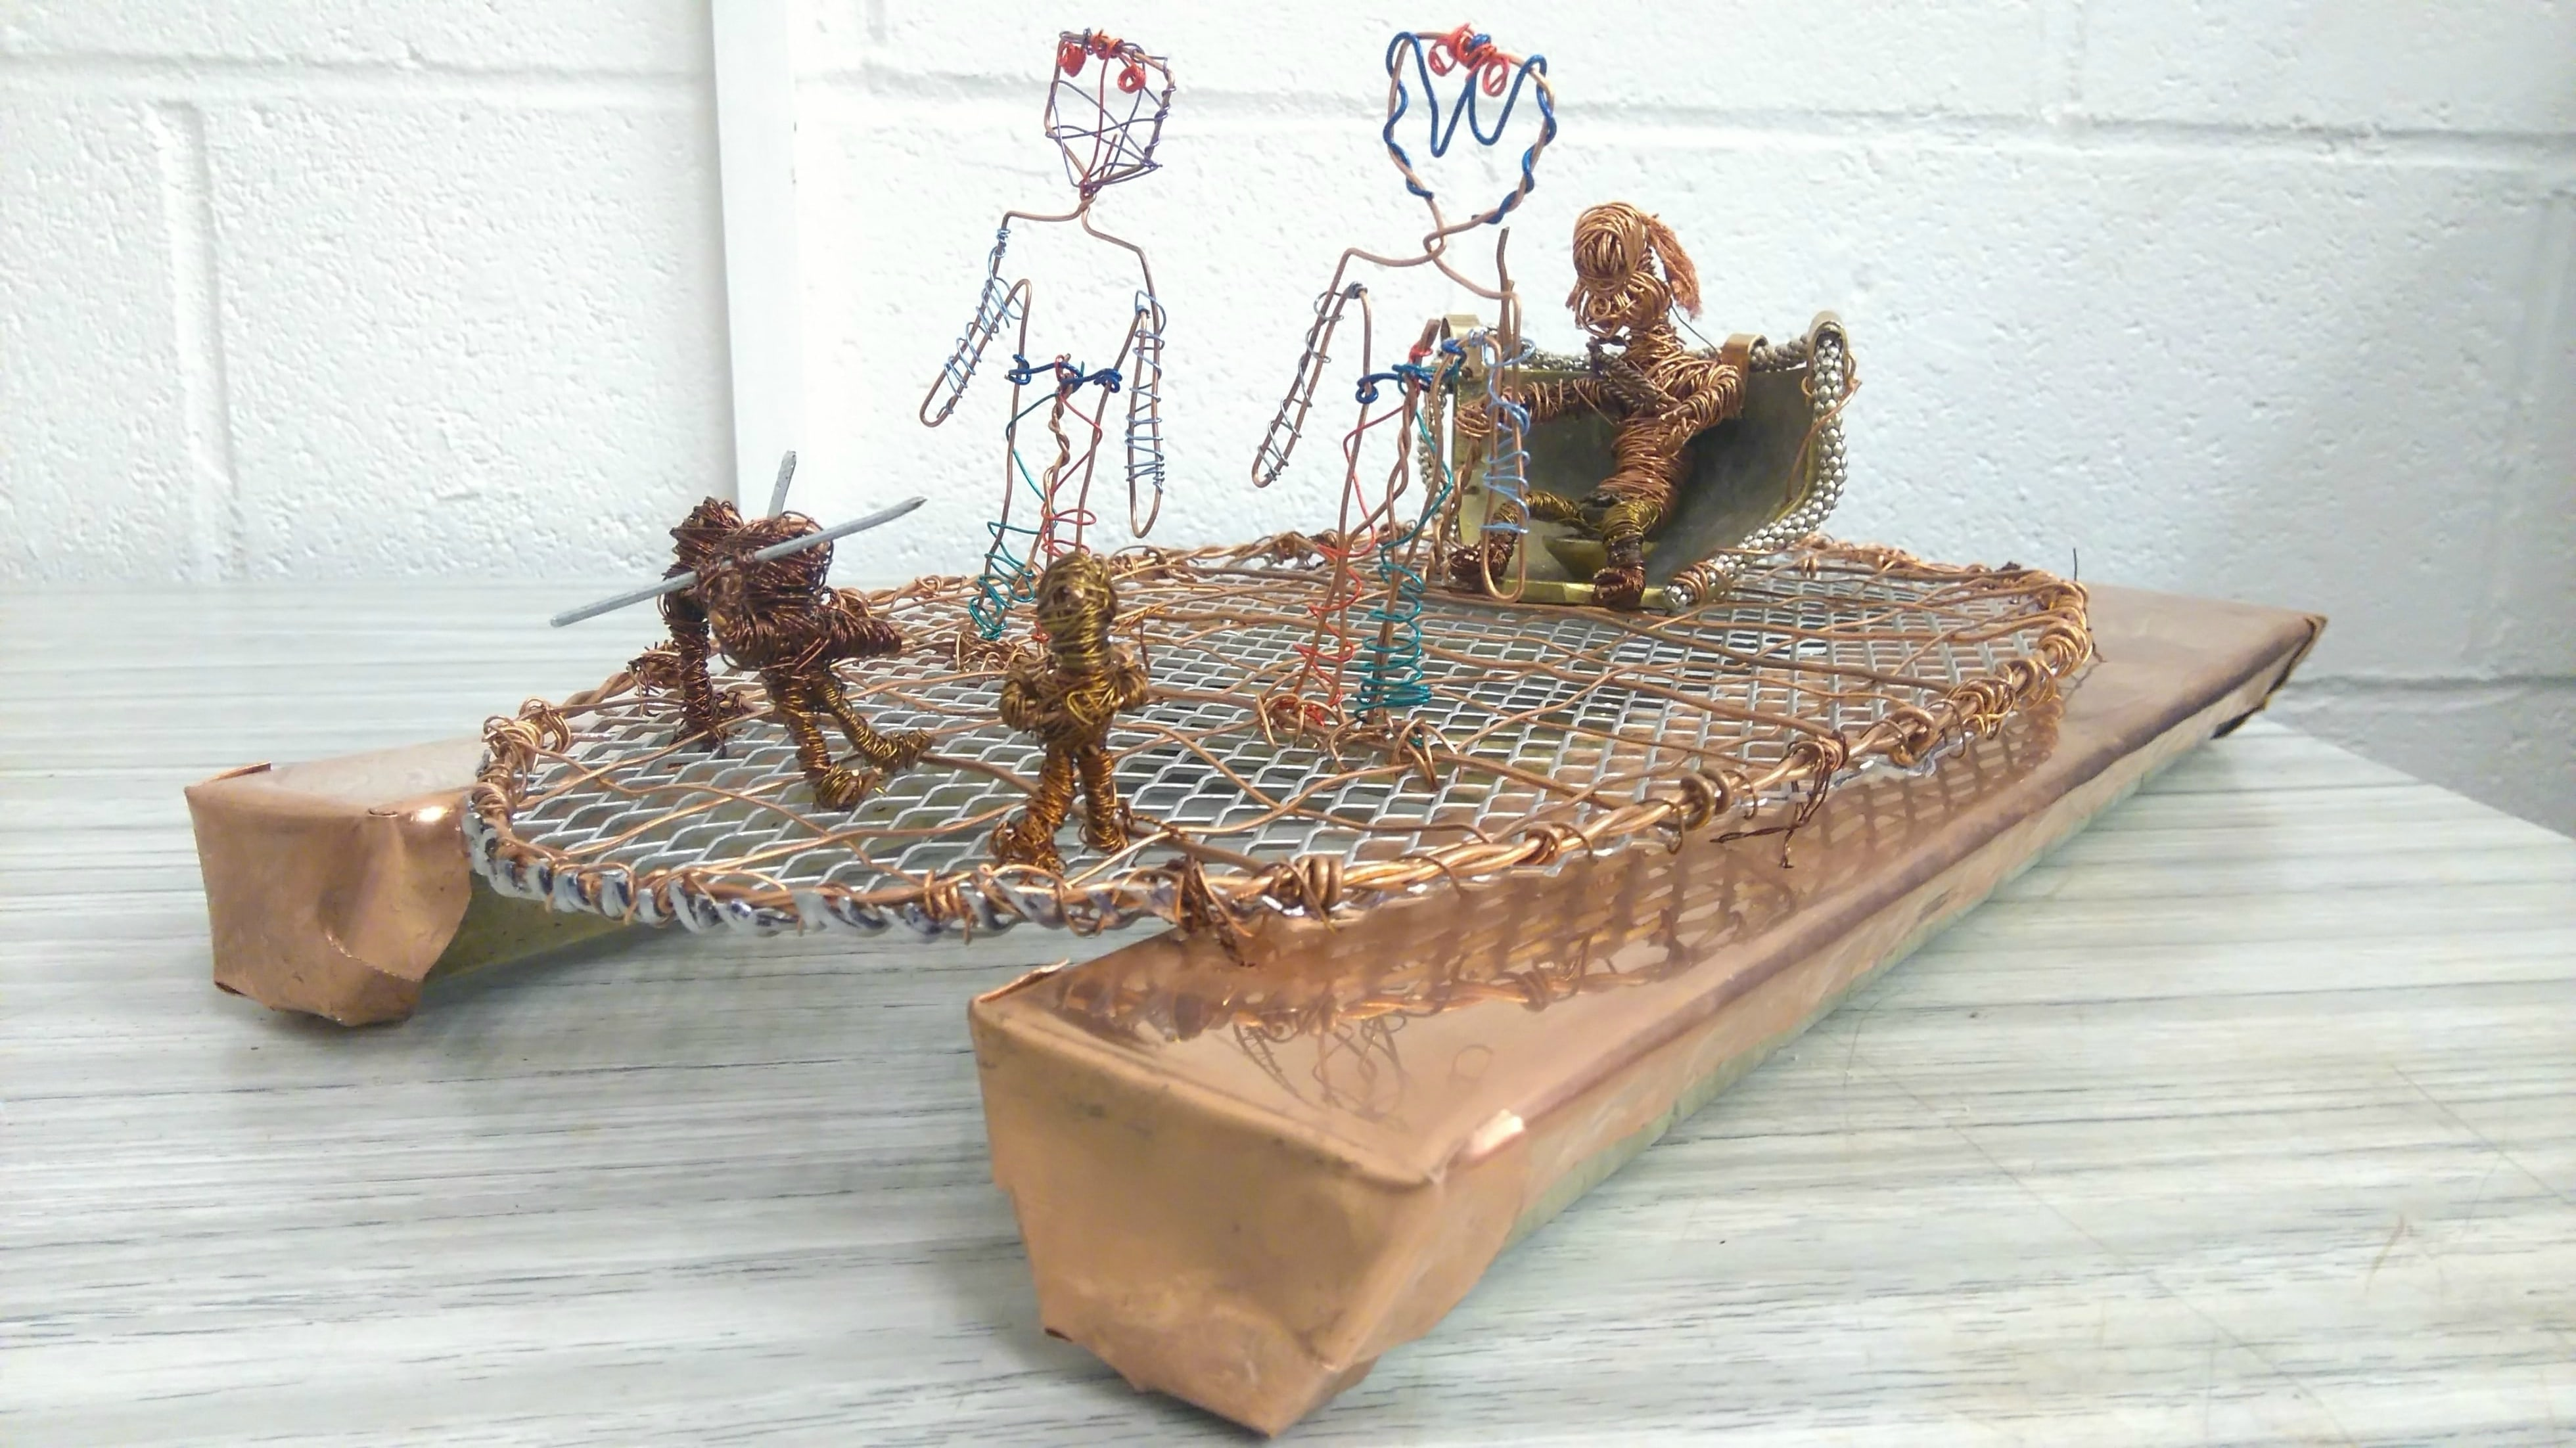 The Raft of the Nephilim Giants